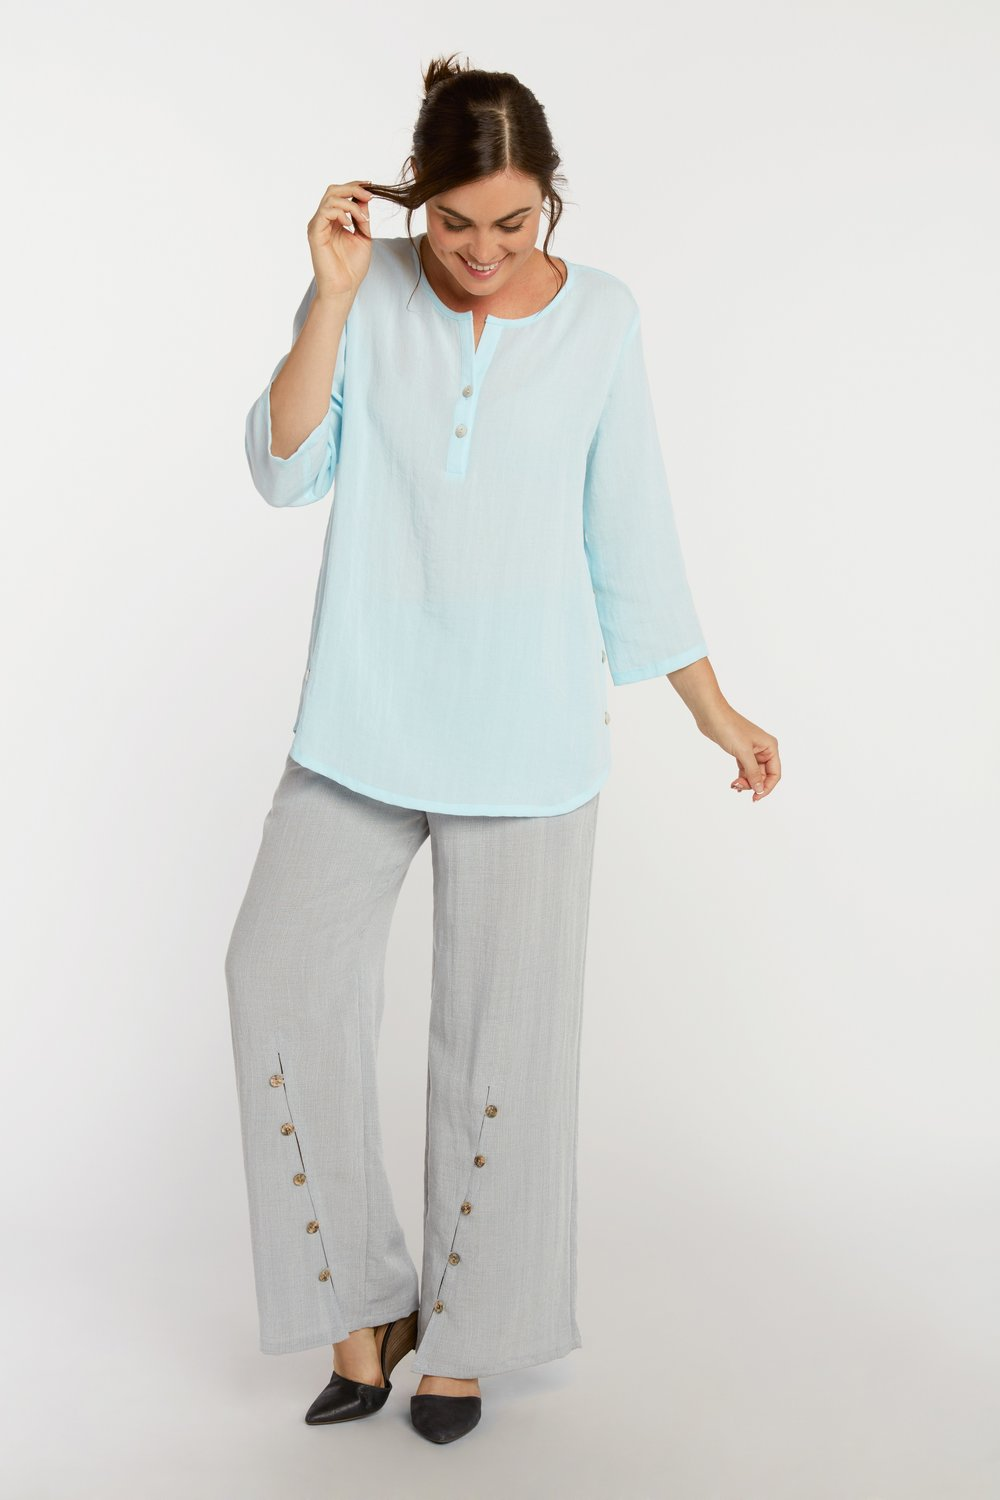 AA205 - Side Button Pullover    Seaglass - CL4690